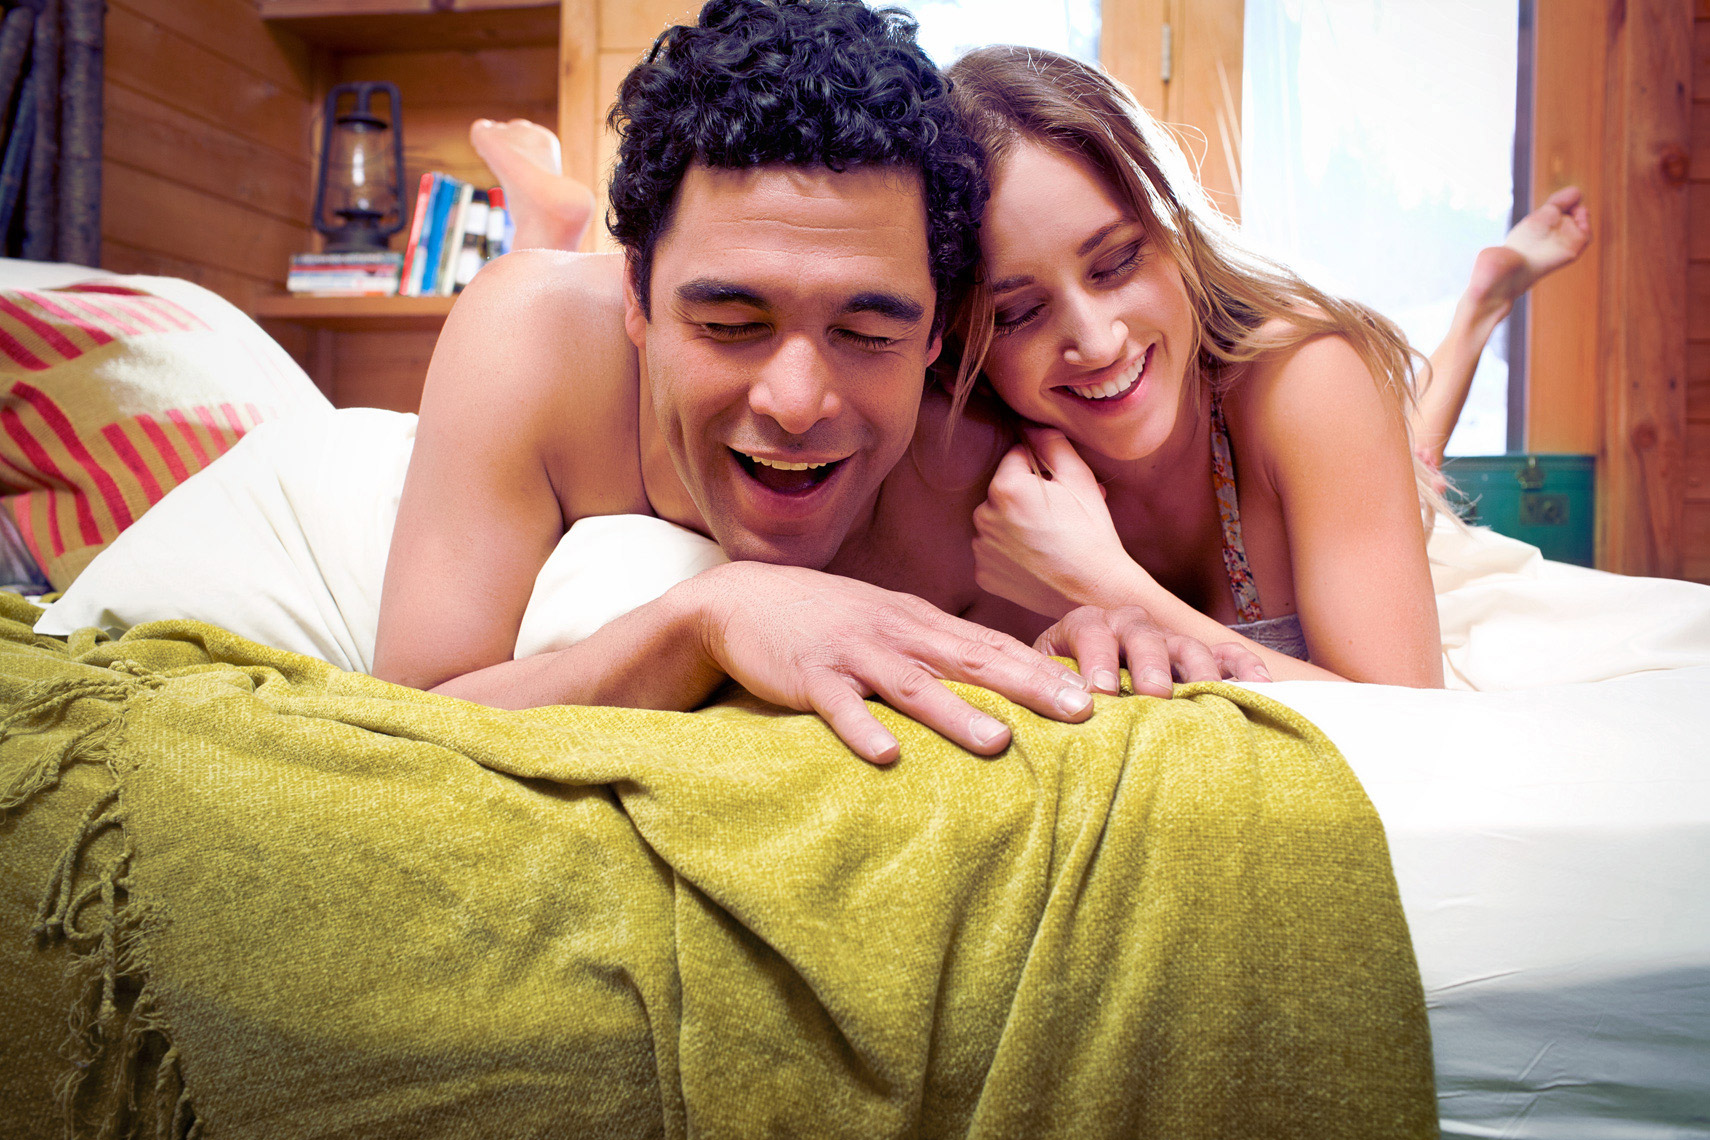 detroit-lifestyle-photographer-scott-stewart-portrait-of-couple-laughing-in-bedroom